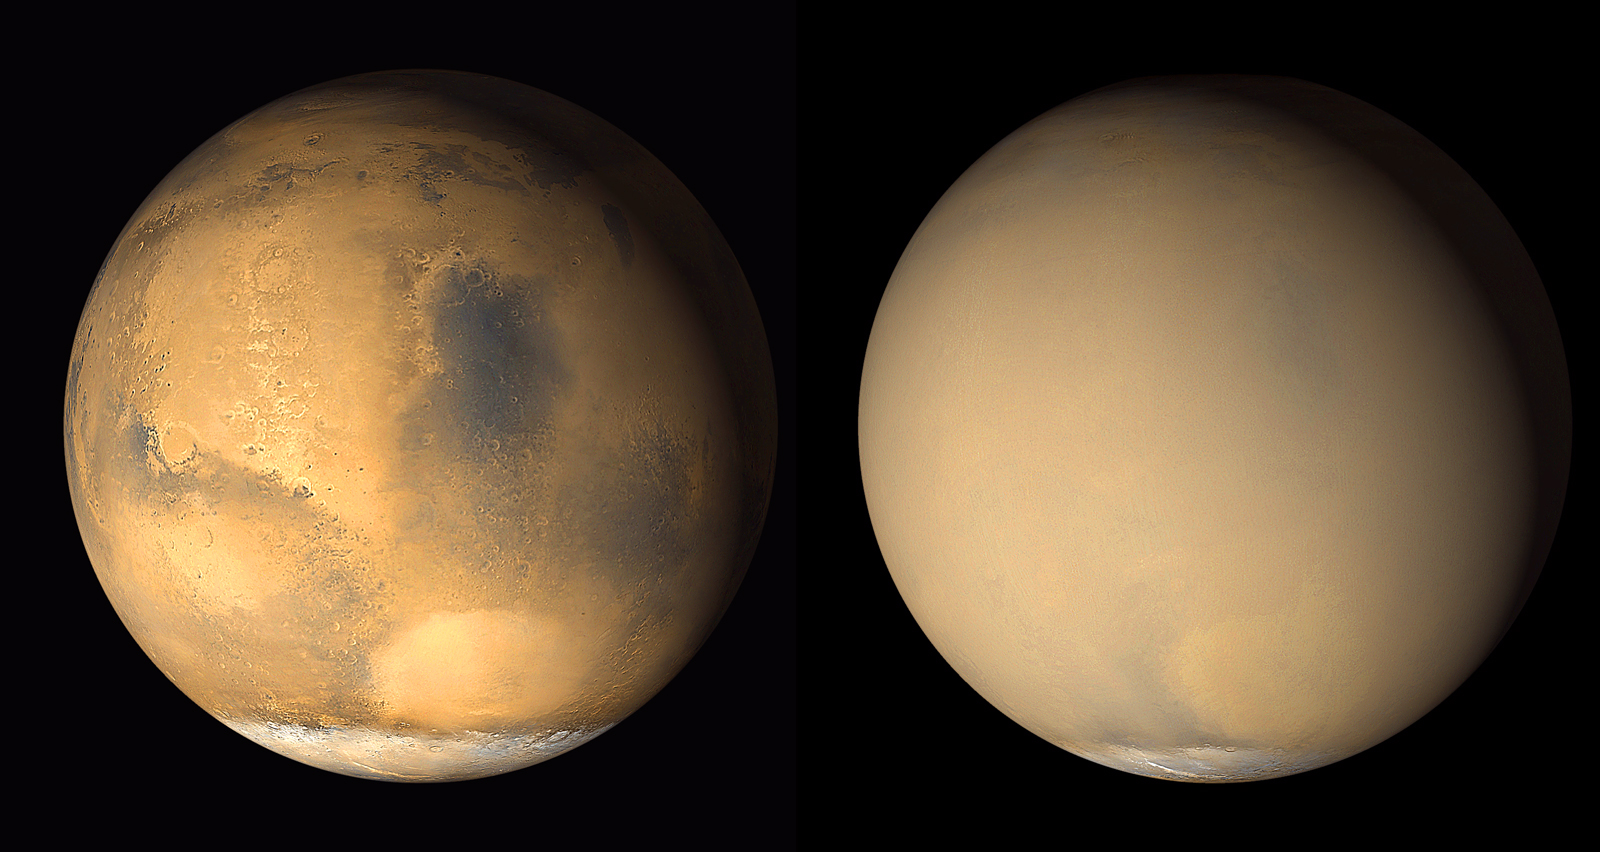 Two 2001 images from the Mars Orbiter Camera on NASA's Mars Global Surveyor orbiter show a dramatic change in the planet's appearance when haze raised by dust-storm activity in the south became globally distributed. The images were taken about a month apart. - Image   Credits: NASA/JPL-Caltech/MSSS